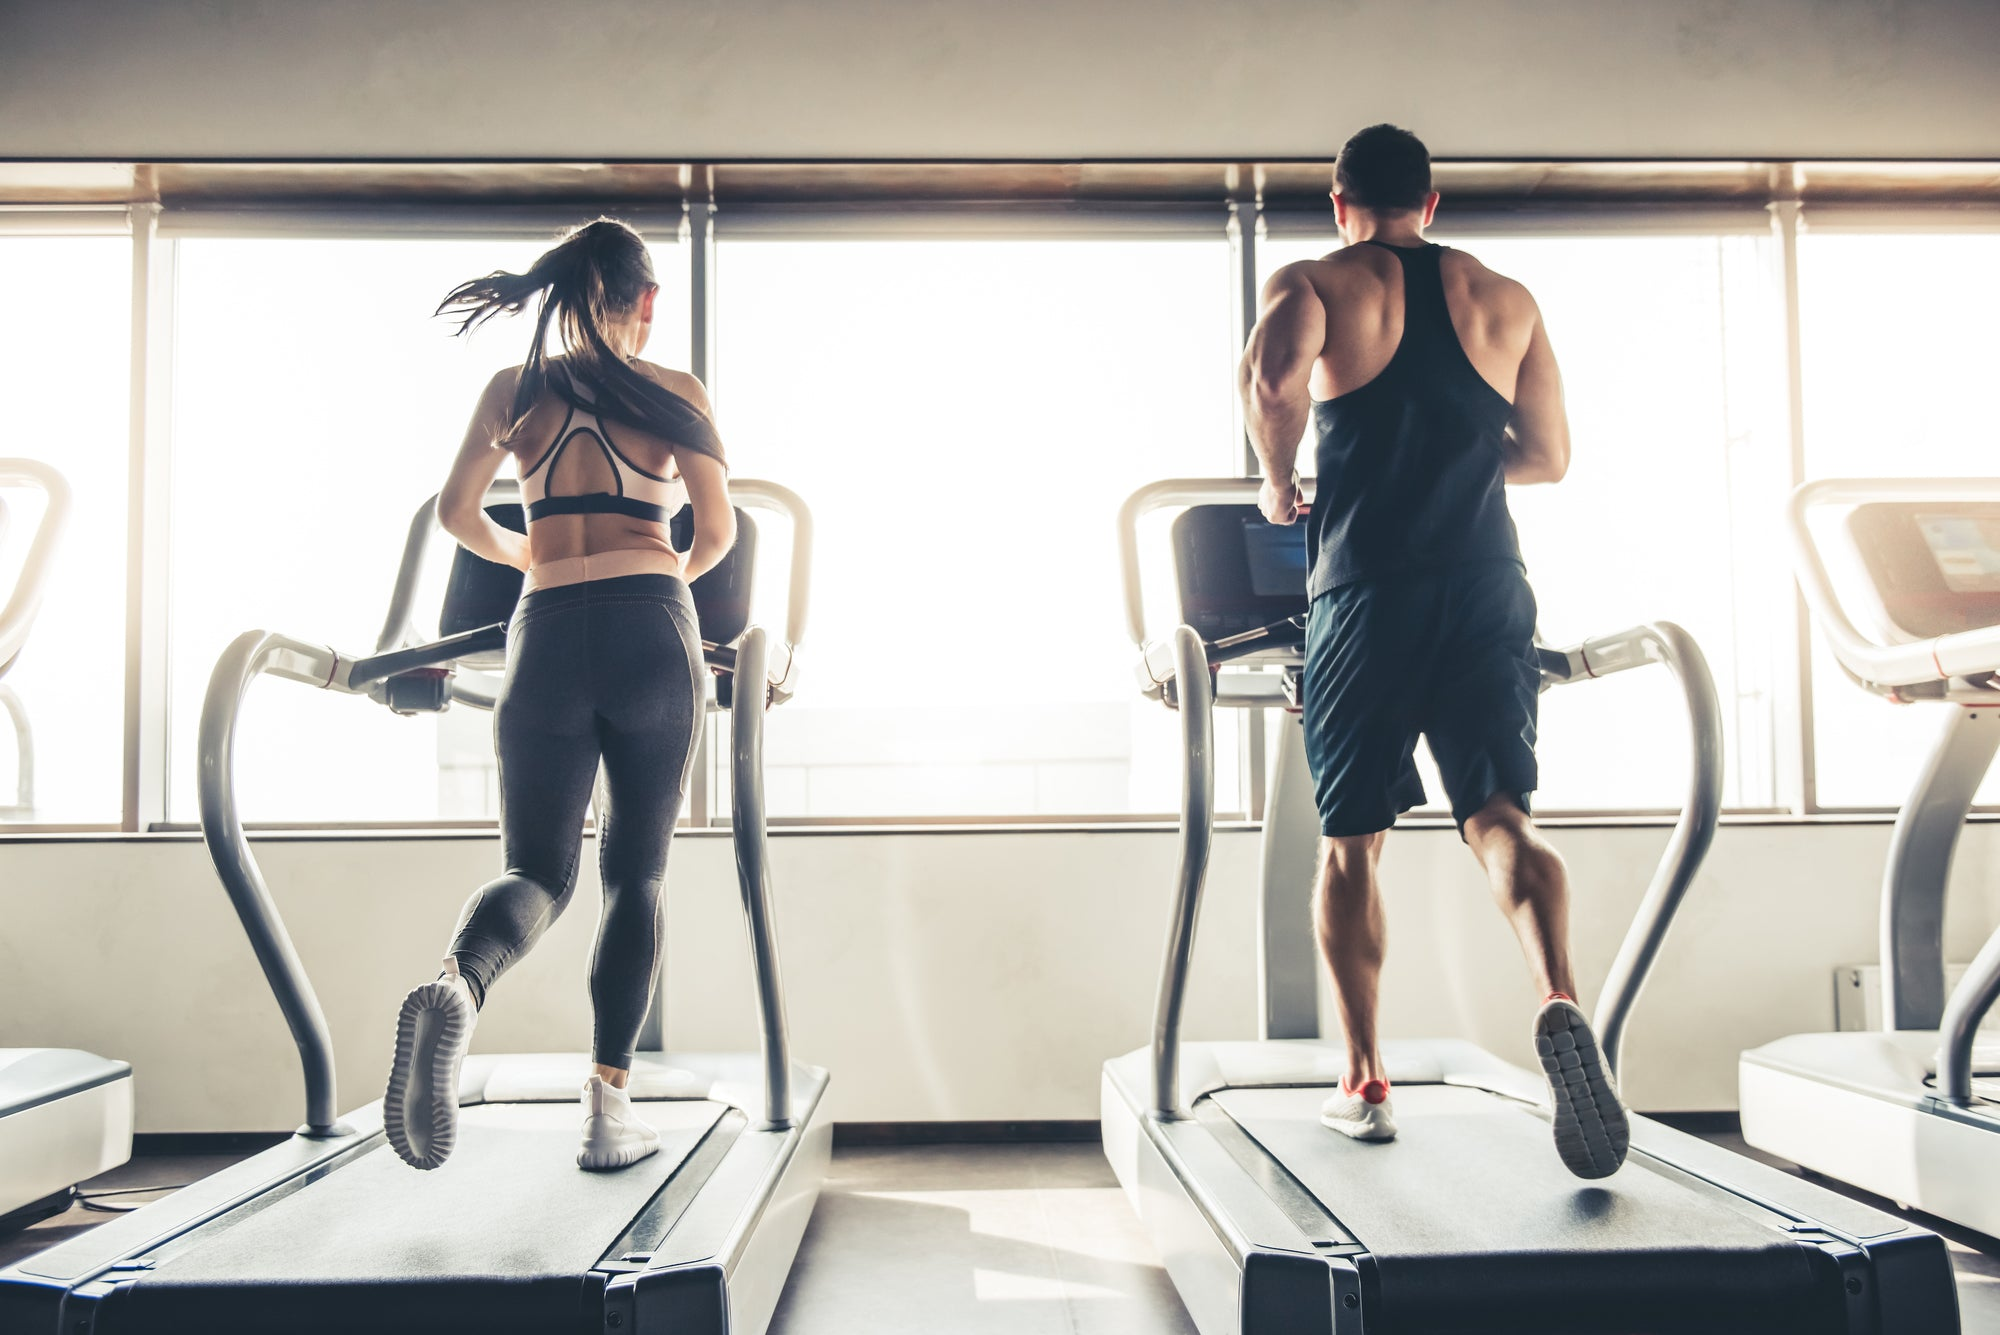 A Simple Gym Machine Workout Routine for Beginners